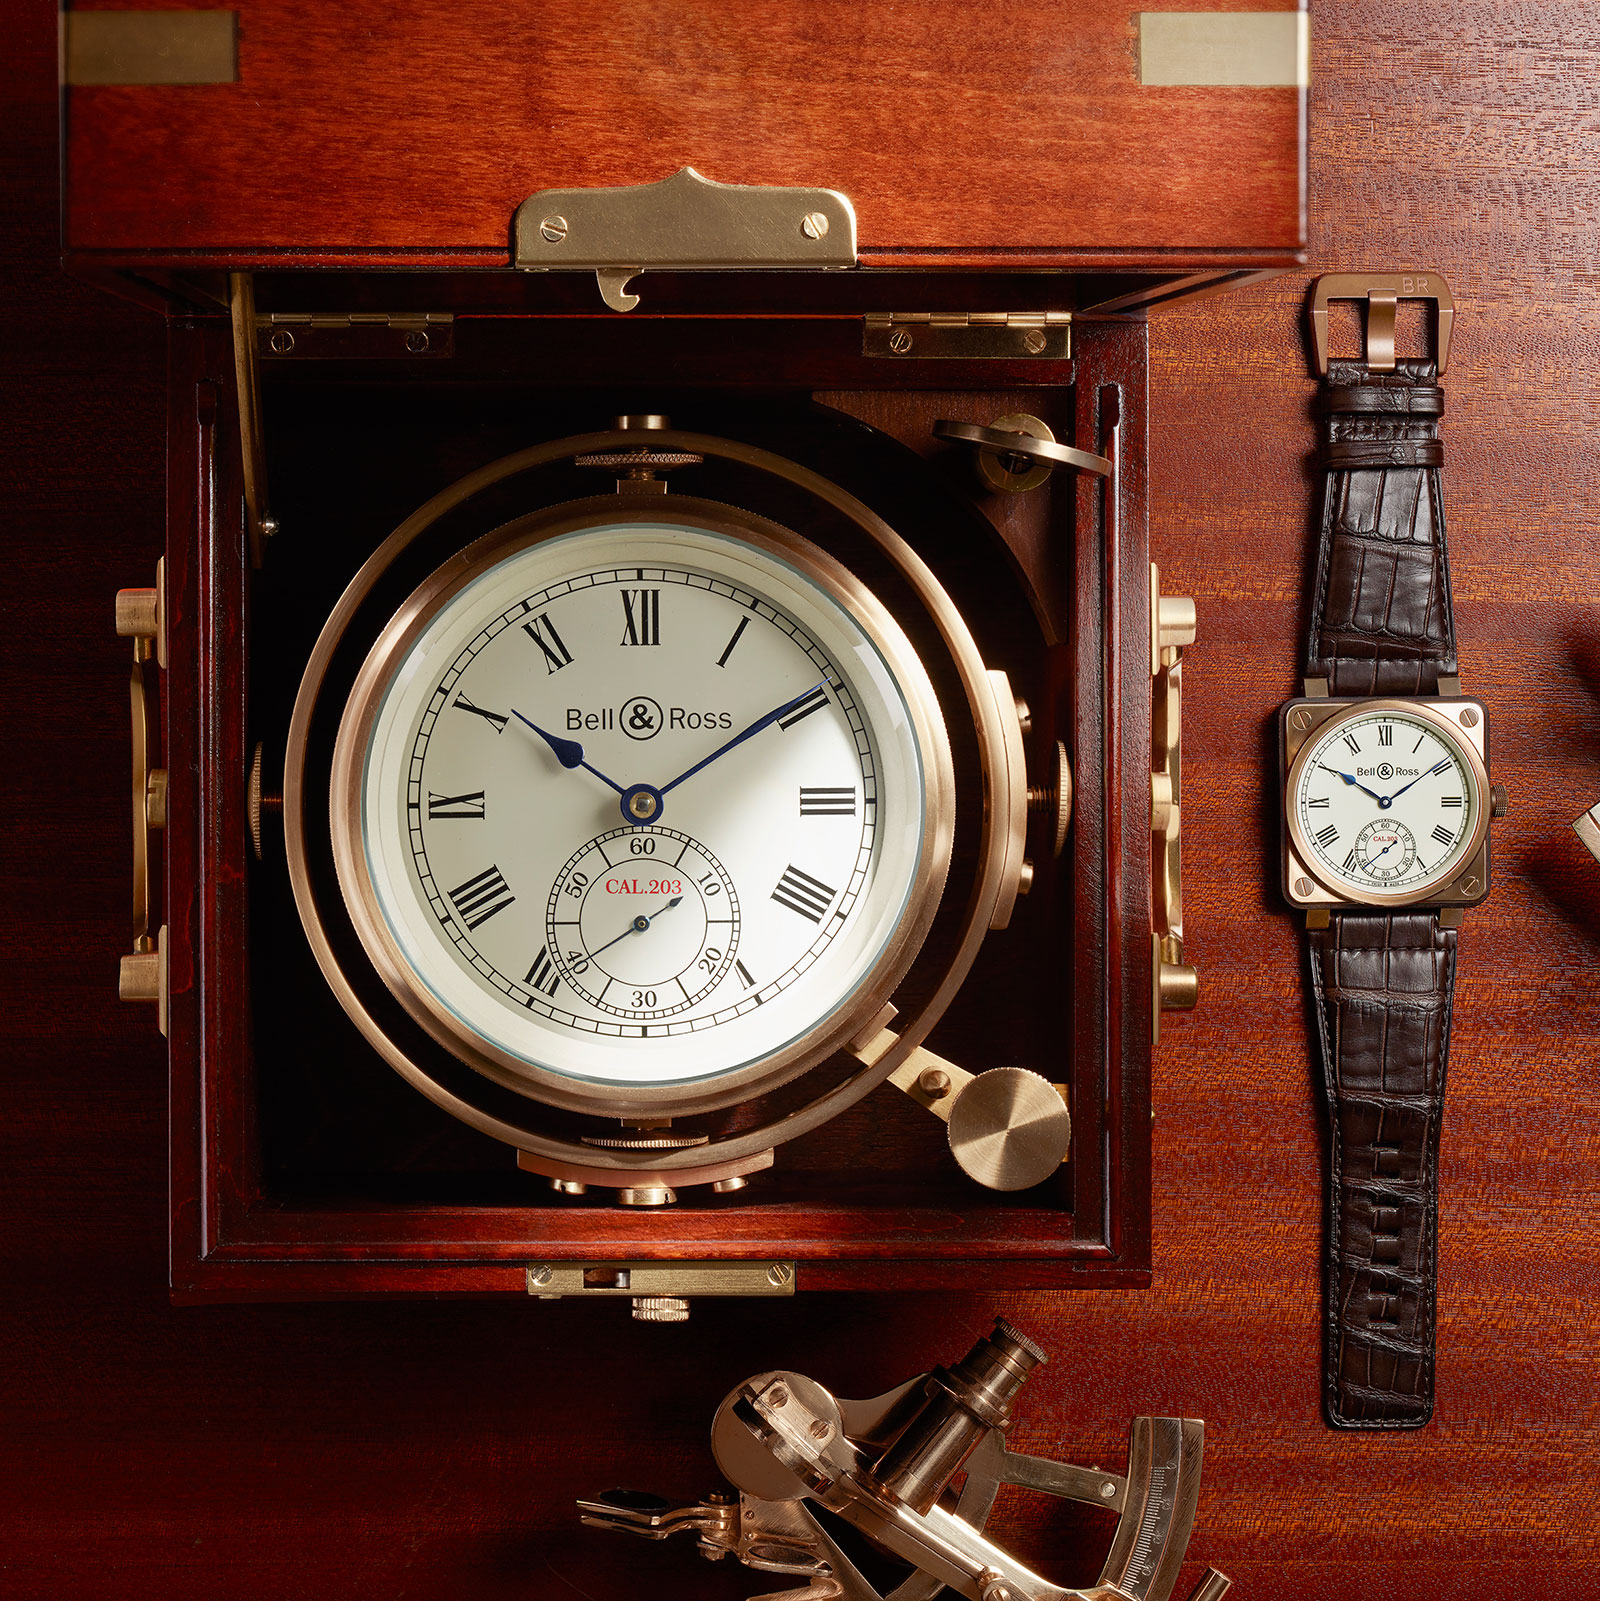 Bell & Ross Introduces Marine Chronometer-Inspired Aviator's